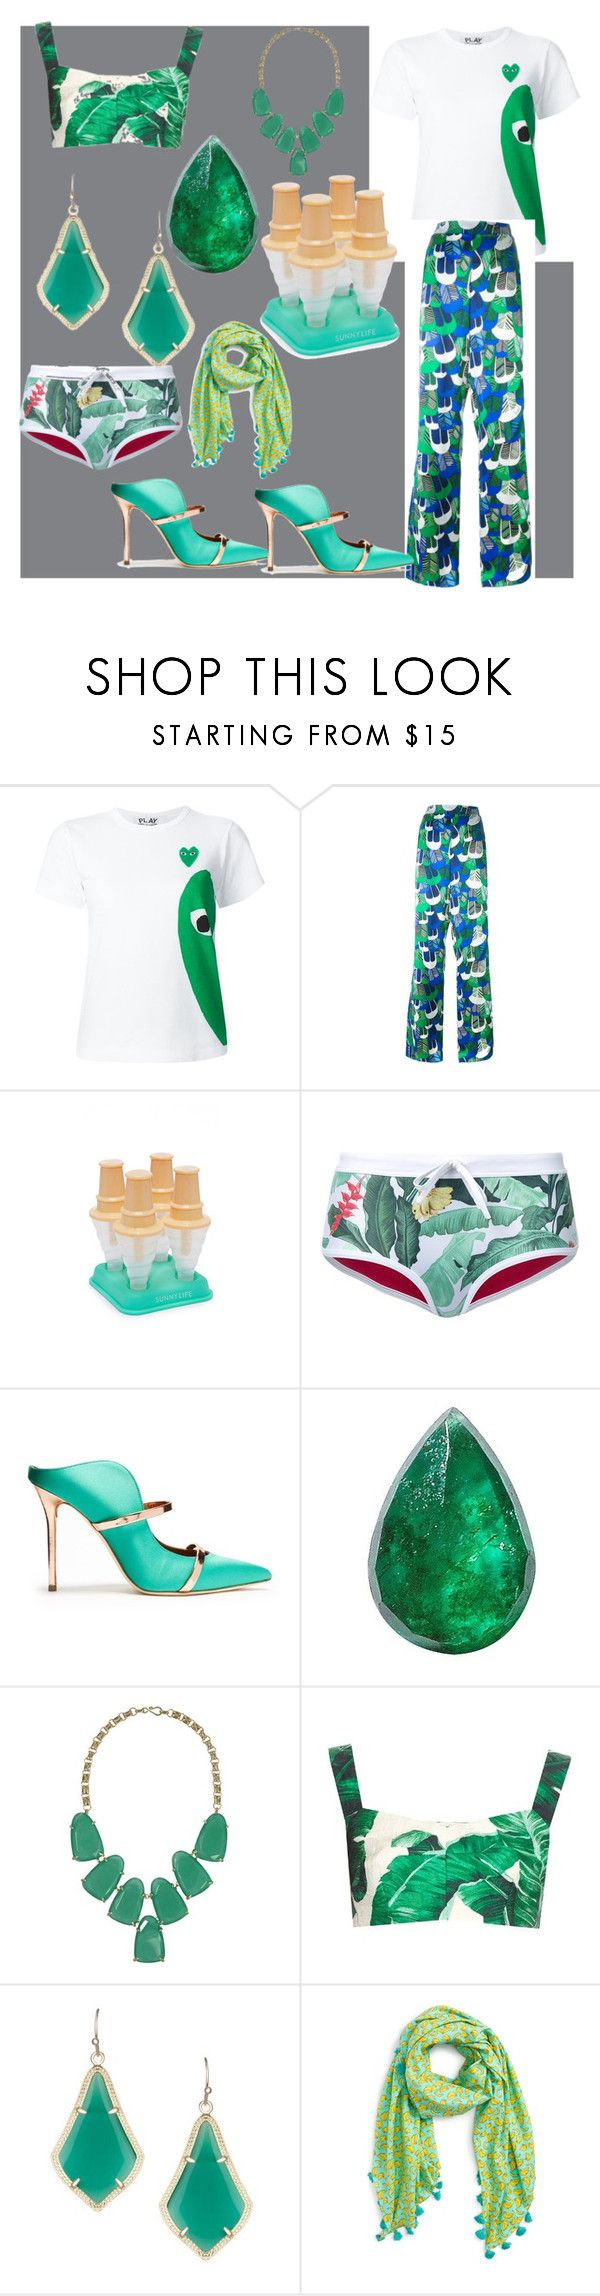 """""""set sale alert"""" by denisee-denisee ❤ liked on Polyvore featuring Play Comme des Garçons, Dsquared2, Sunnylife, Duskii, Malone Souliers, Loquet, Kendra Scott, Dolce&Gabbana, San Diego Hat Co. and vintage"""